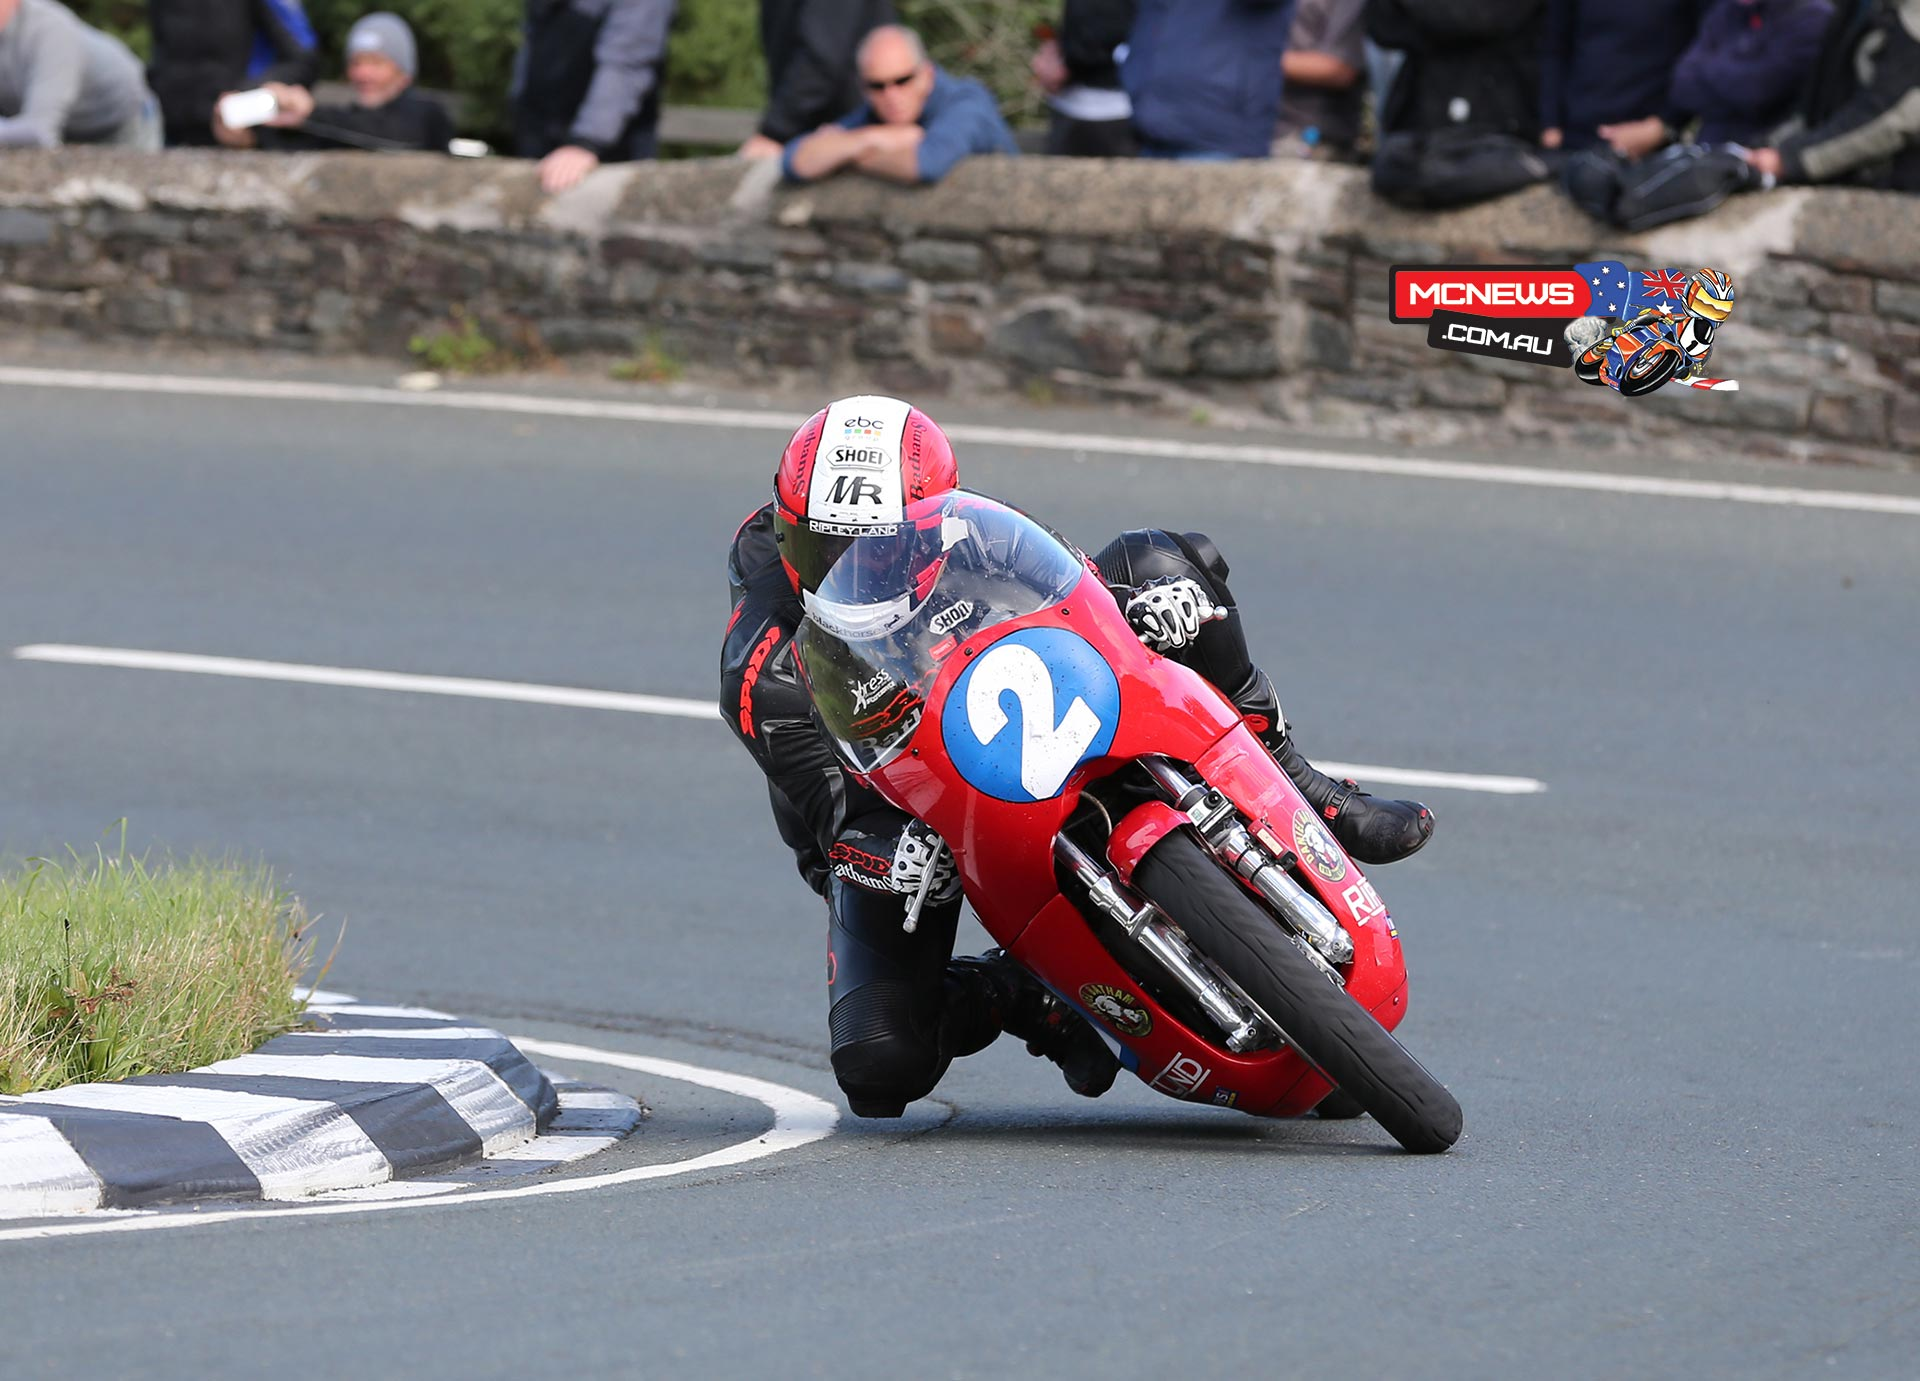 Michael Rutter takes the Gooseneck at speed on his Ripley Land Drixton Honda twin.